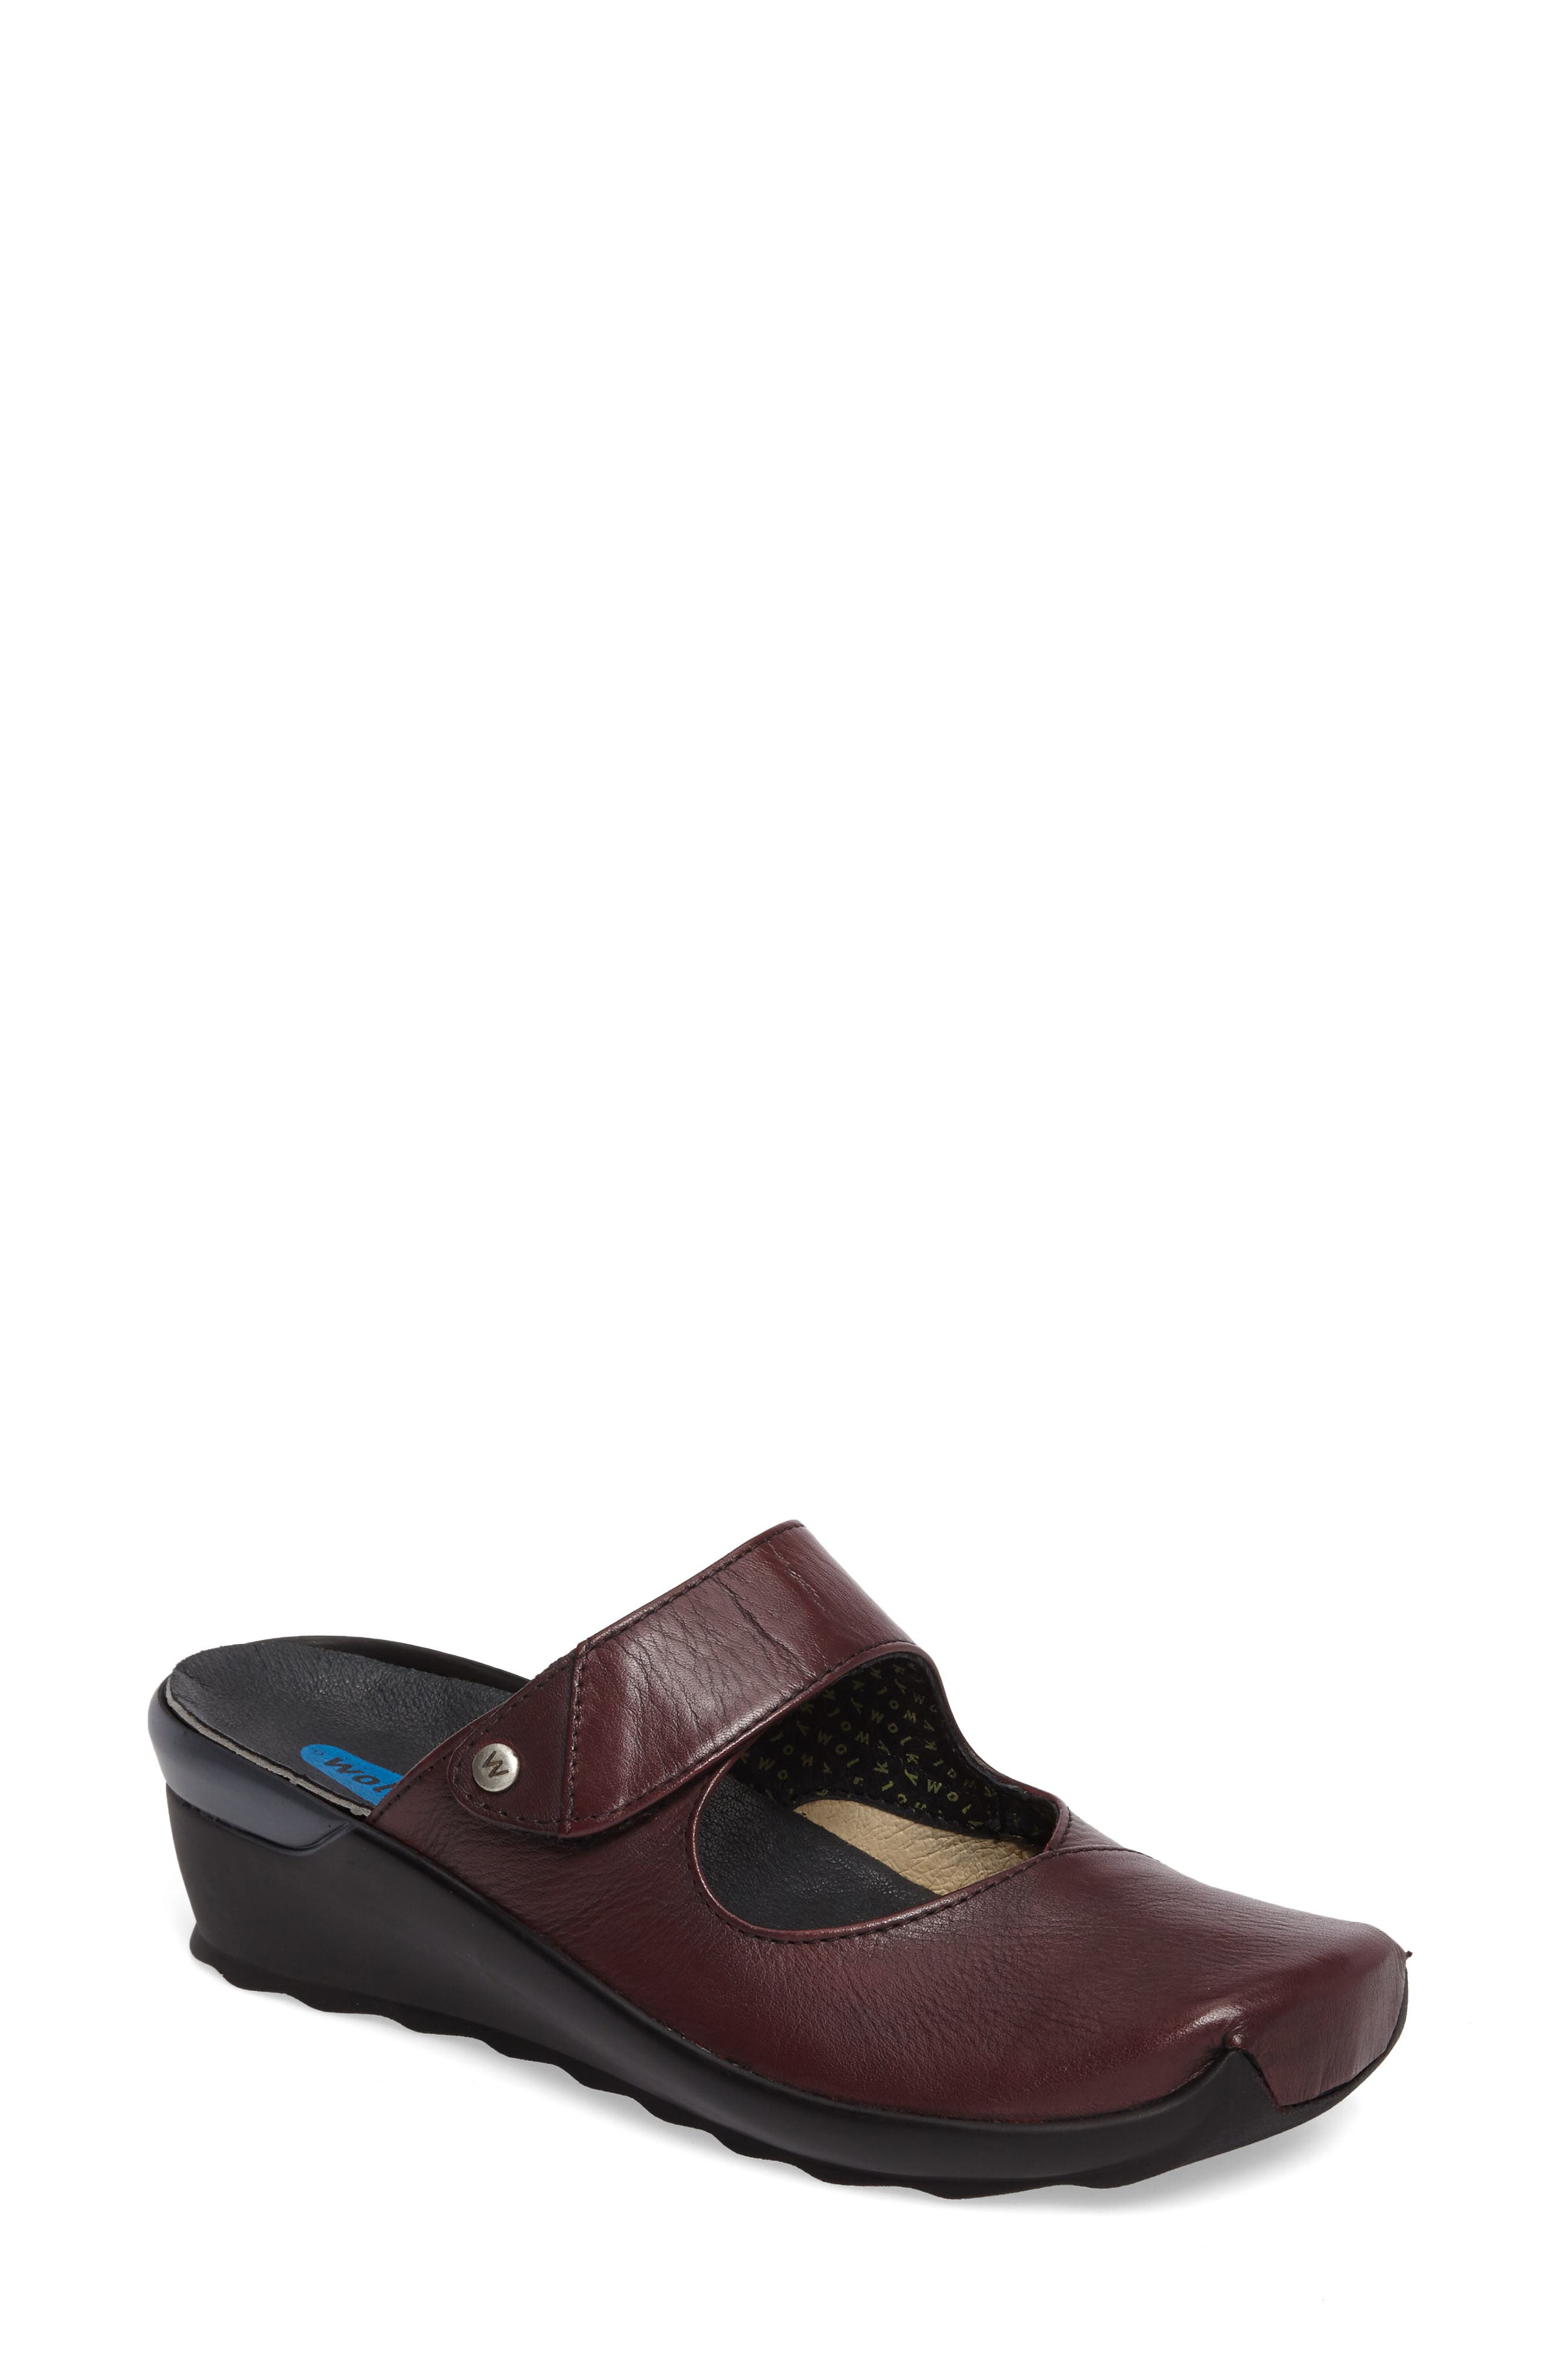 Wolky 'Up' Mary Jane Clog (Women)